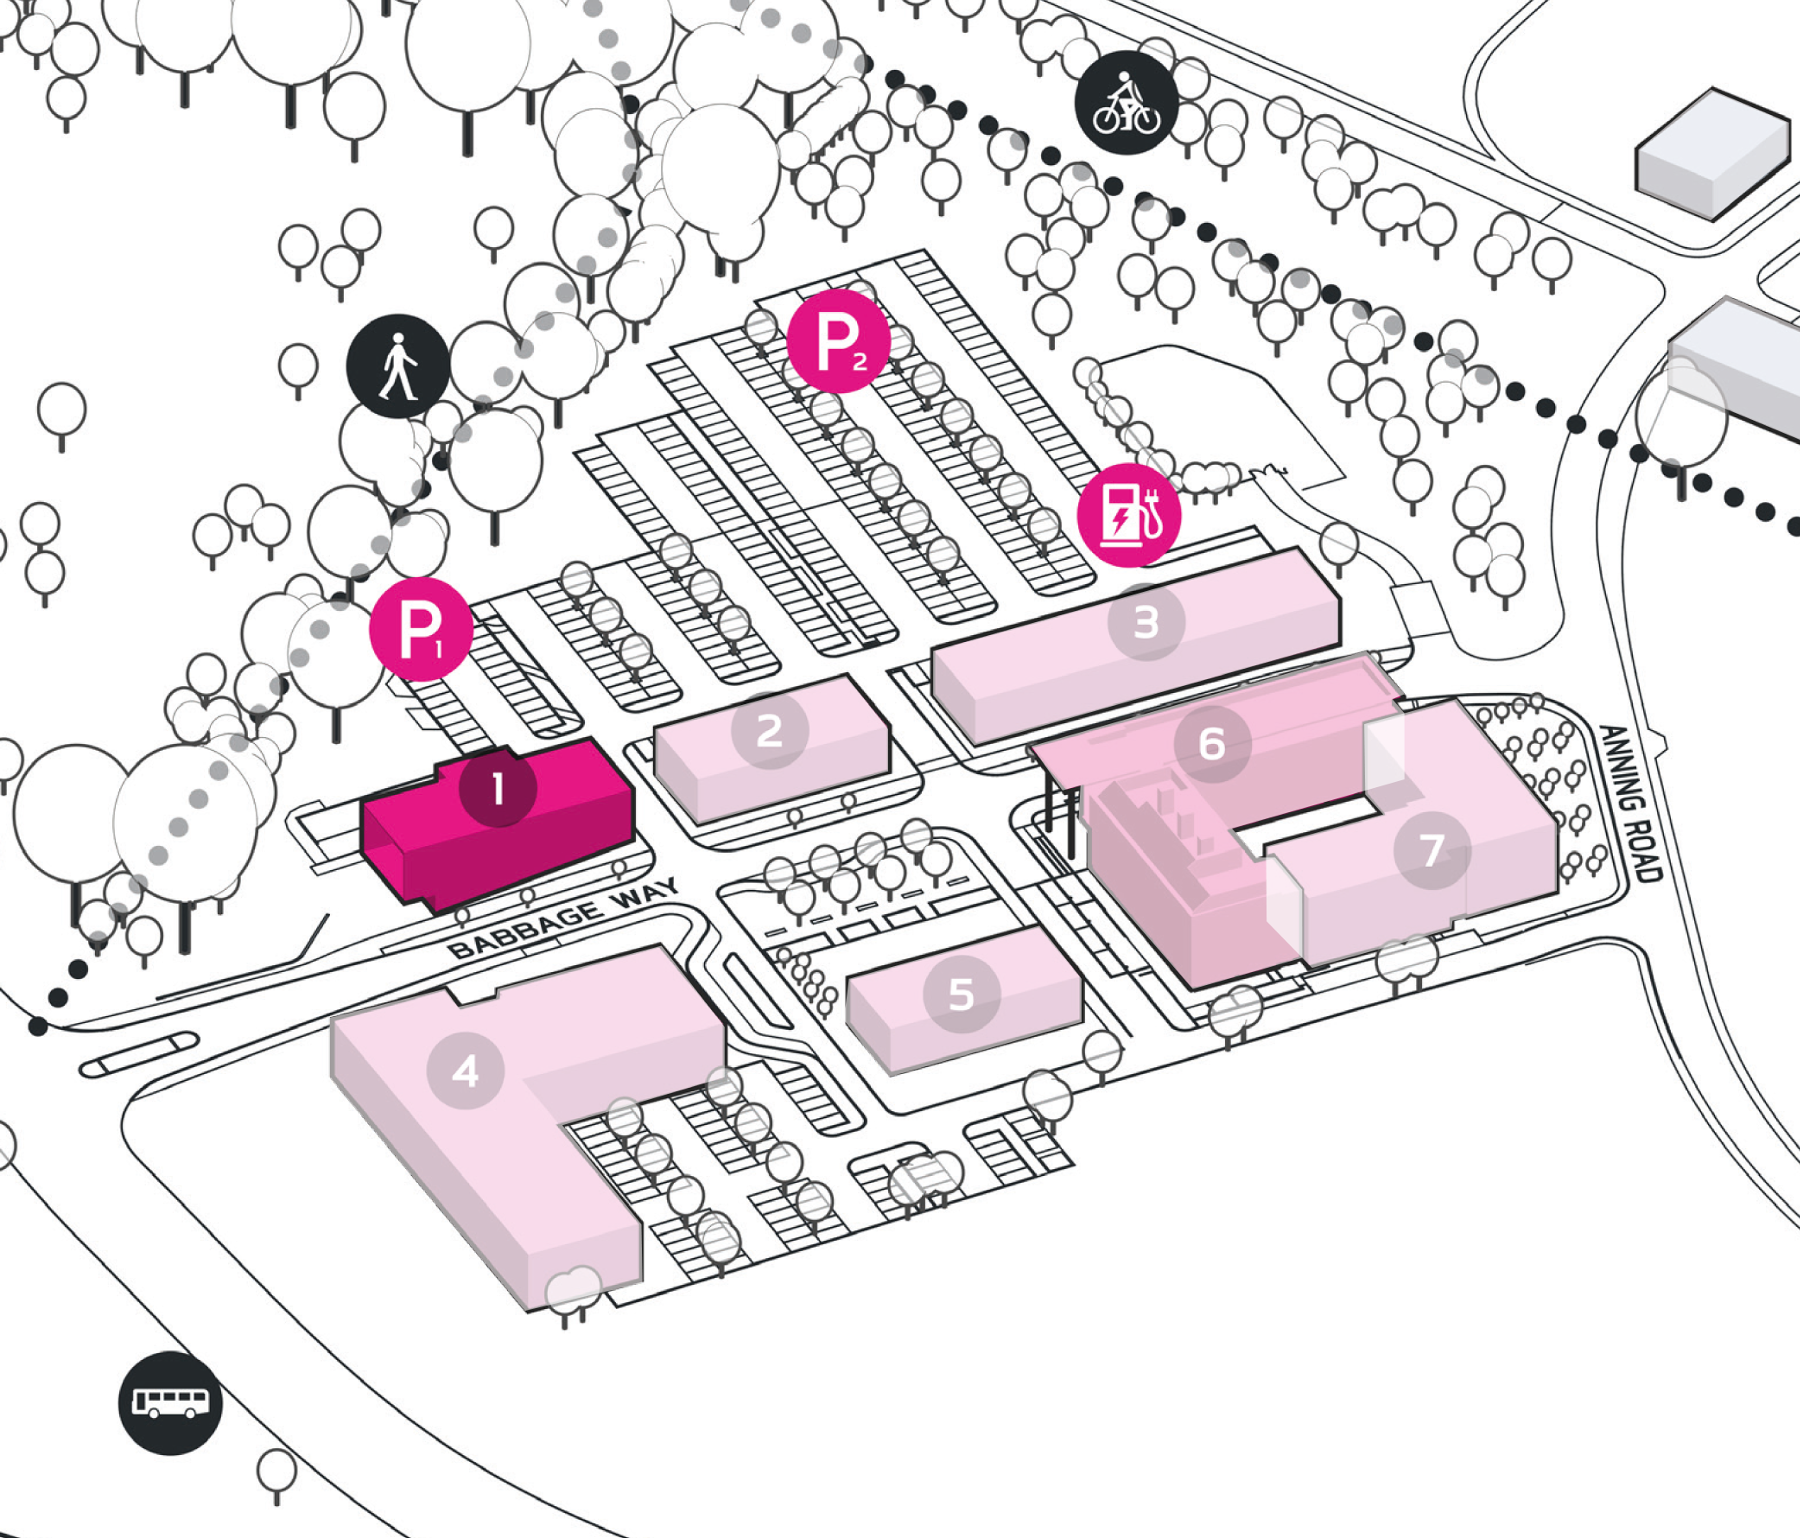 Park Plan highlighting cluster A Building 1